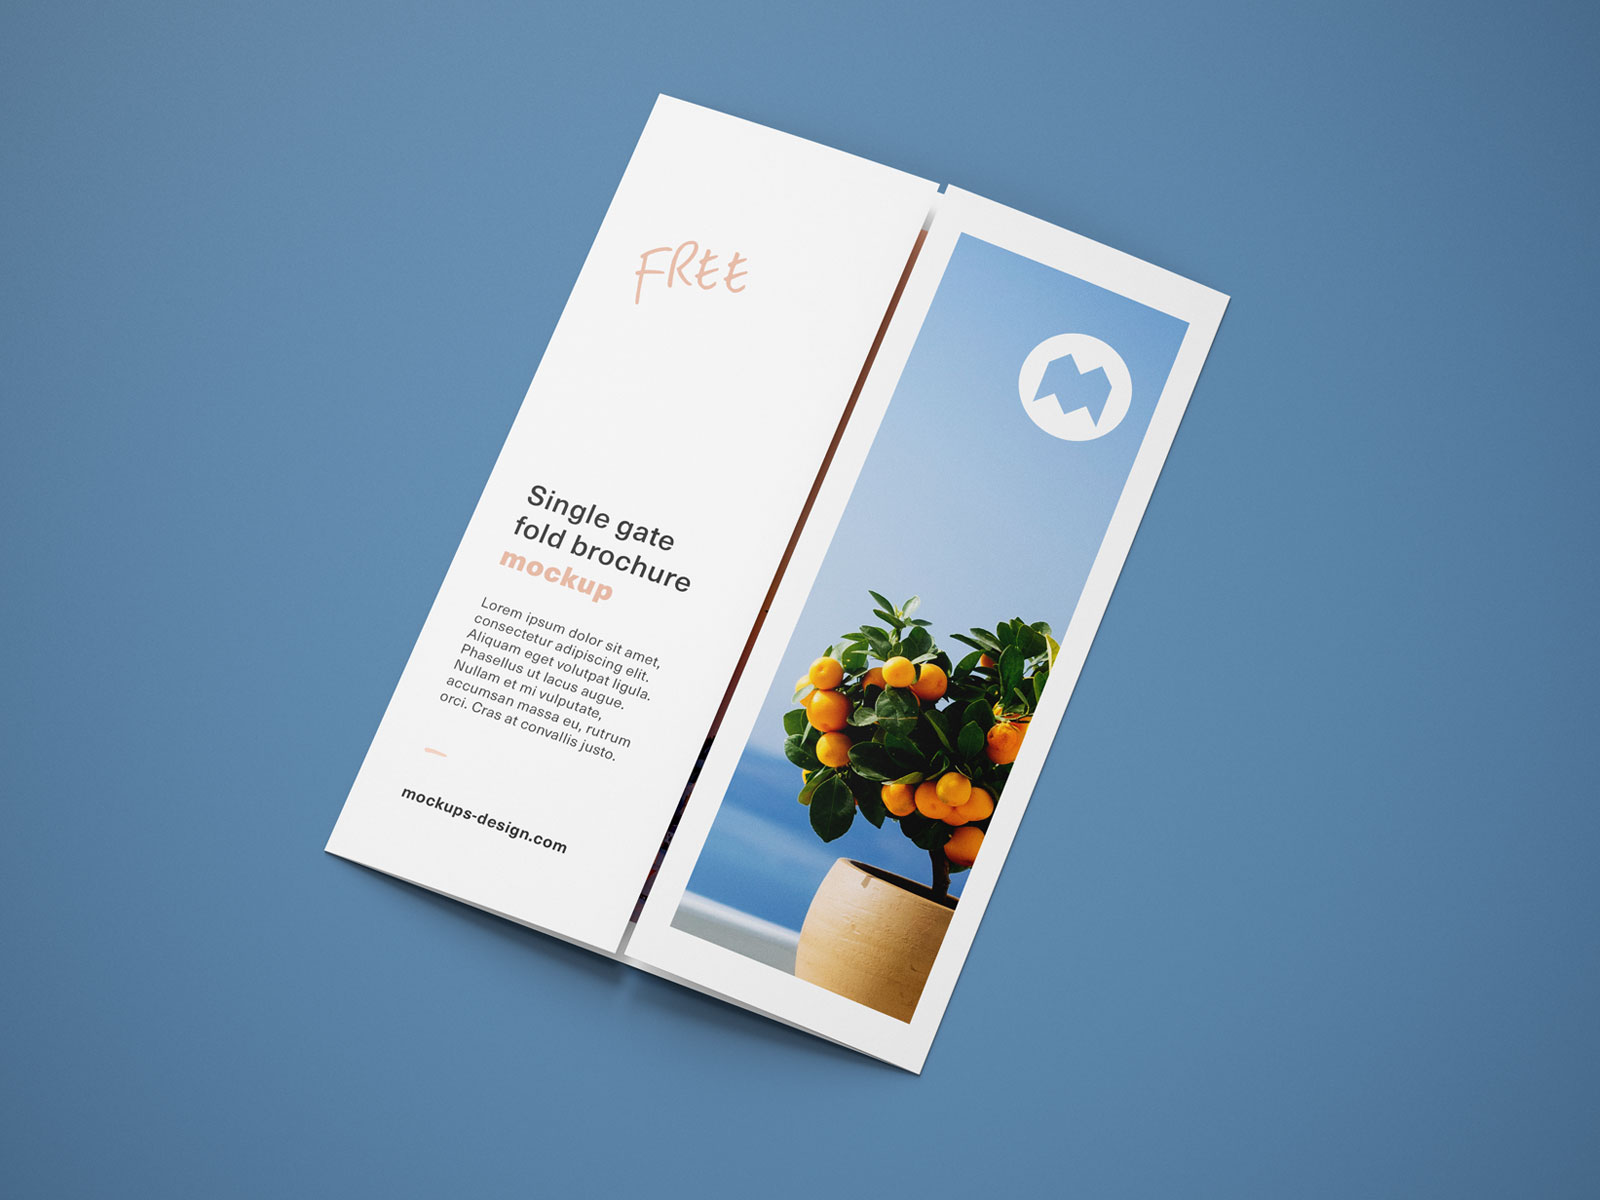 Free-Single-Gate-Fold-Brochure-Mockup-PSD-Set-9